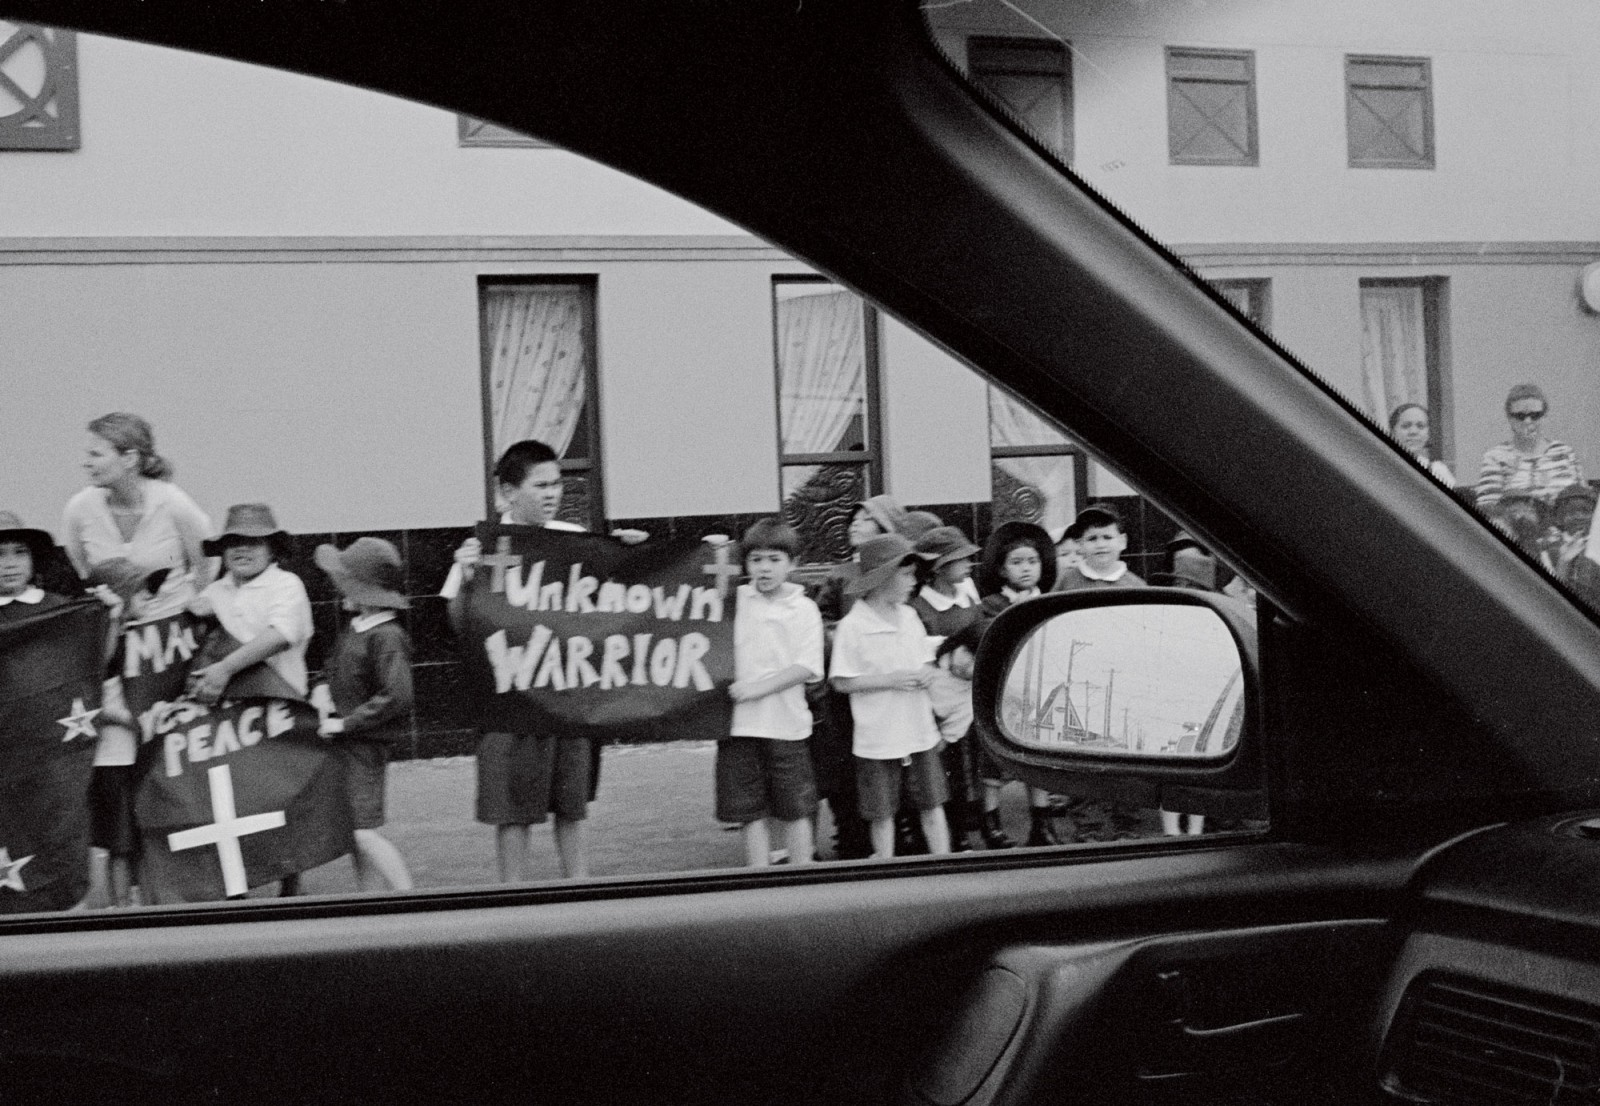 As the cortege travelled from Rongotai to Parliament, many people, including schoolchildren, lined the streets along the route. The Warrior was driven by hearse, with an escort of military and police vehicles. A veteran of El Alamein, Alan Johnston, talks emotionally of his thoughts at the moment he saw the Unknown Warrior appear.